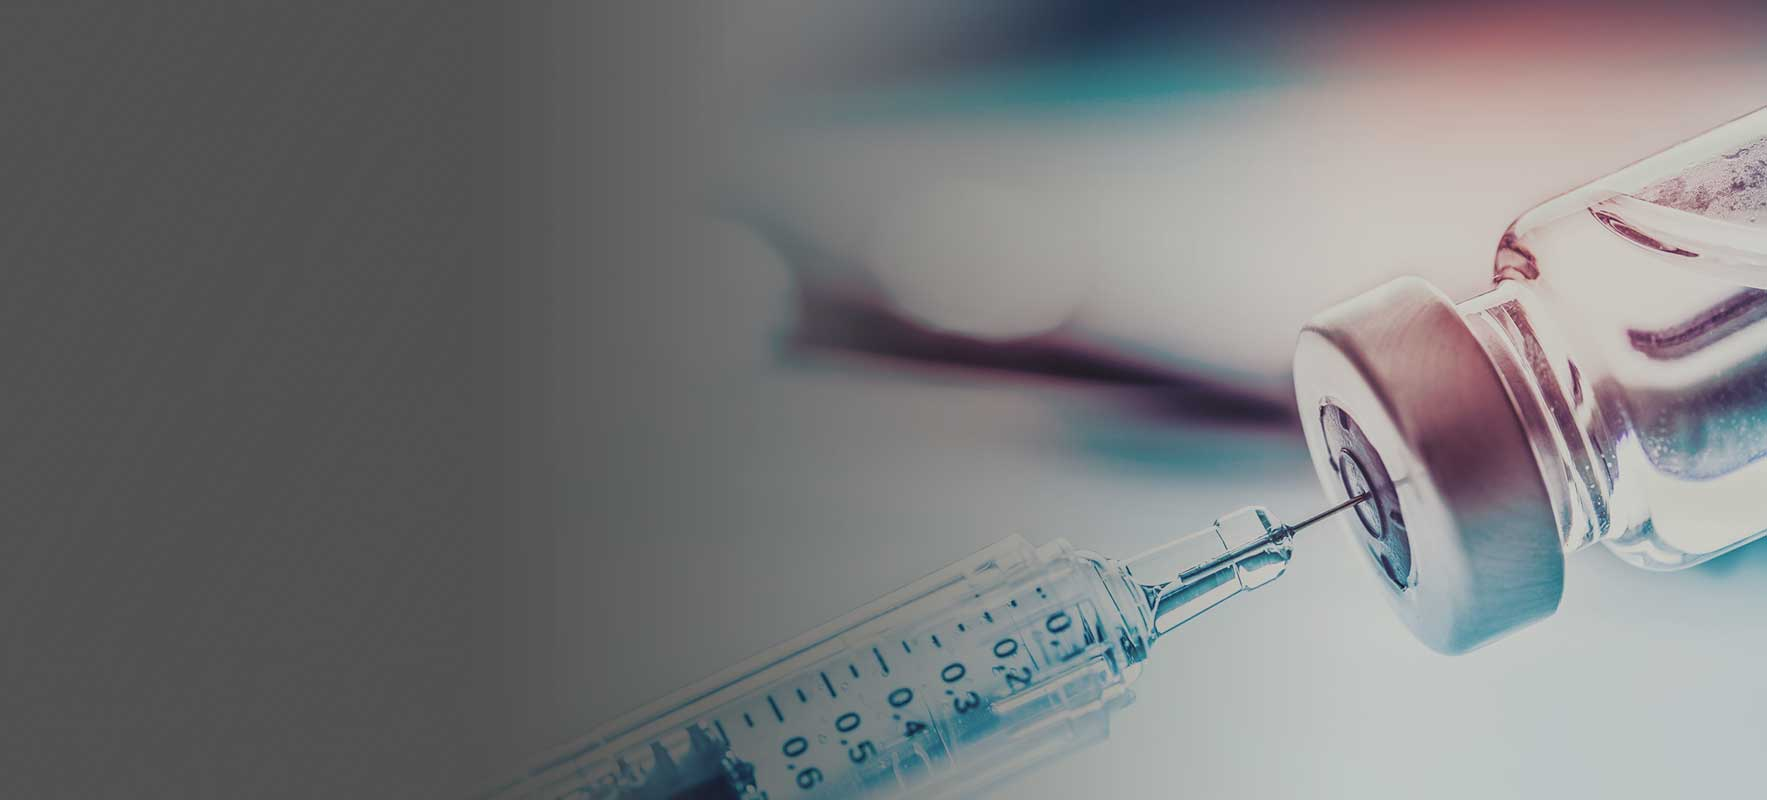 Effective-End-to-End-Covid-19-Vaccine-Management-for-Providers bg